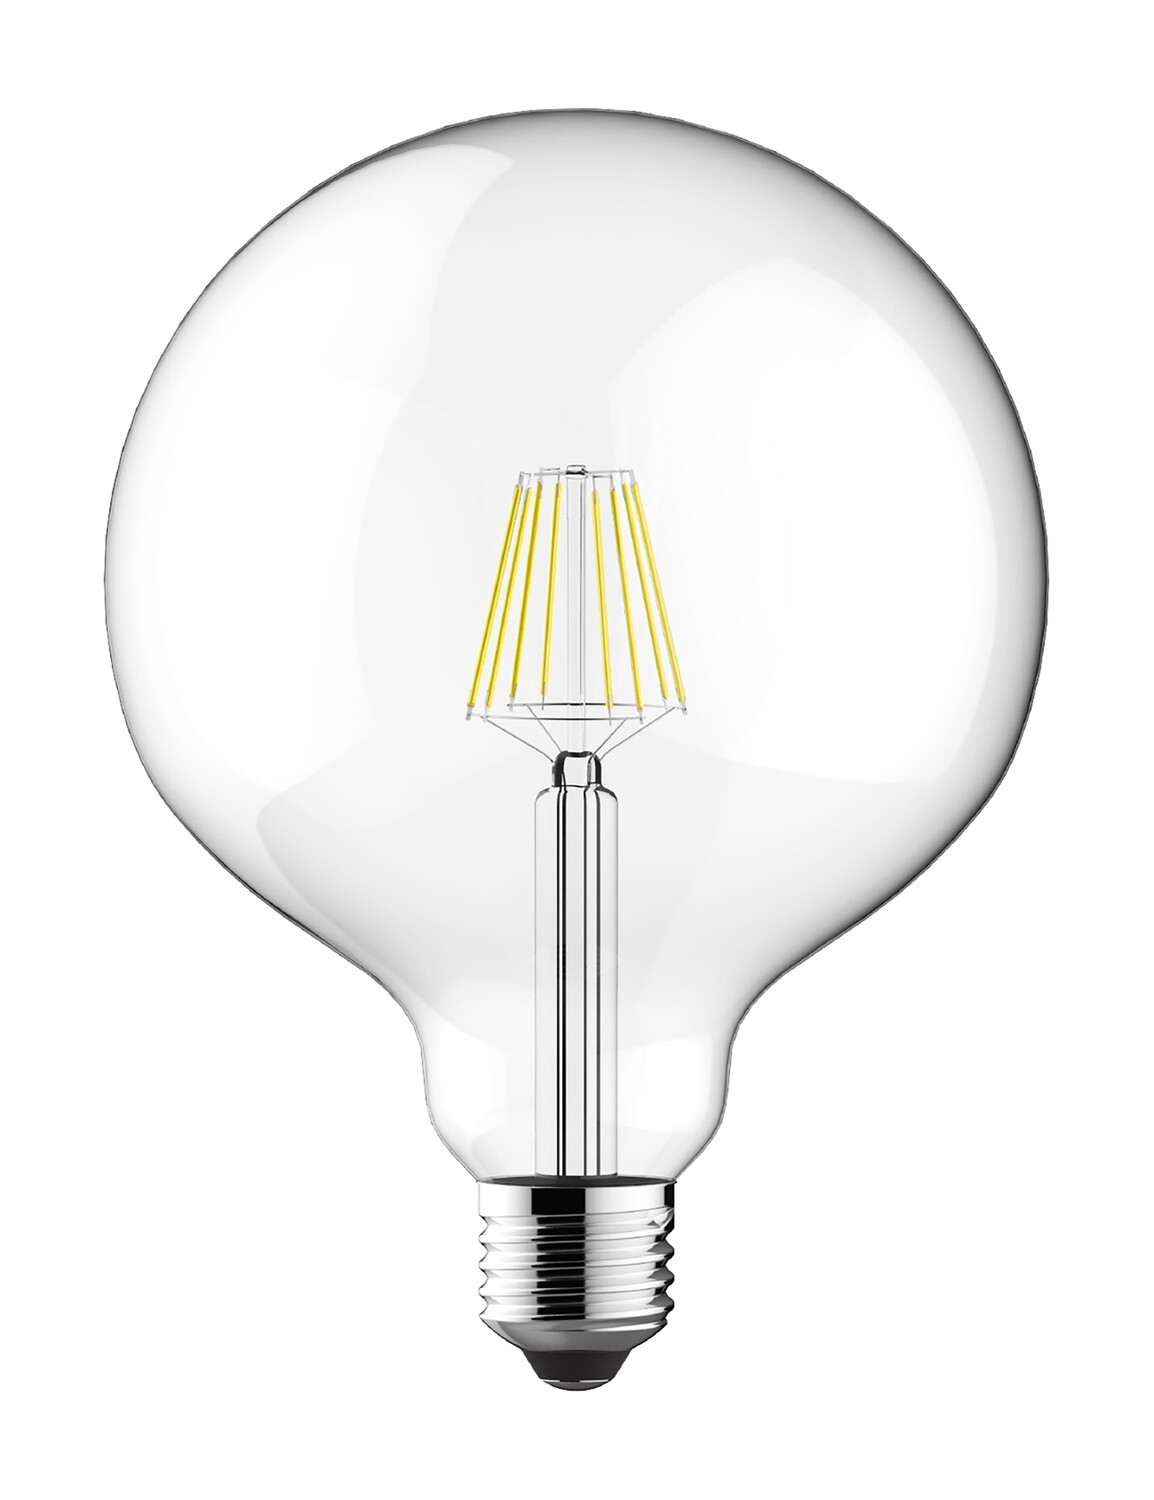 E27-LED filament Globe D125 6.5W 2700K (warm white) 806lm clear DIMMABLE